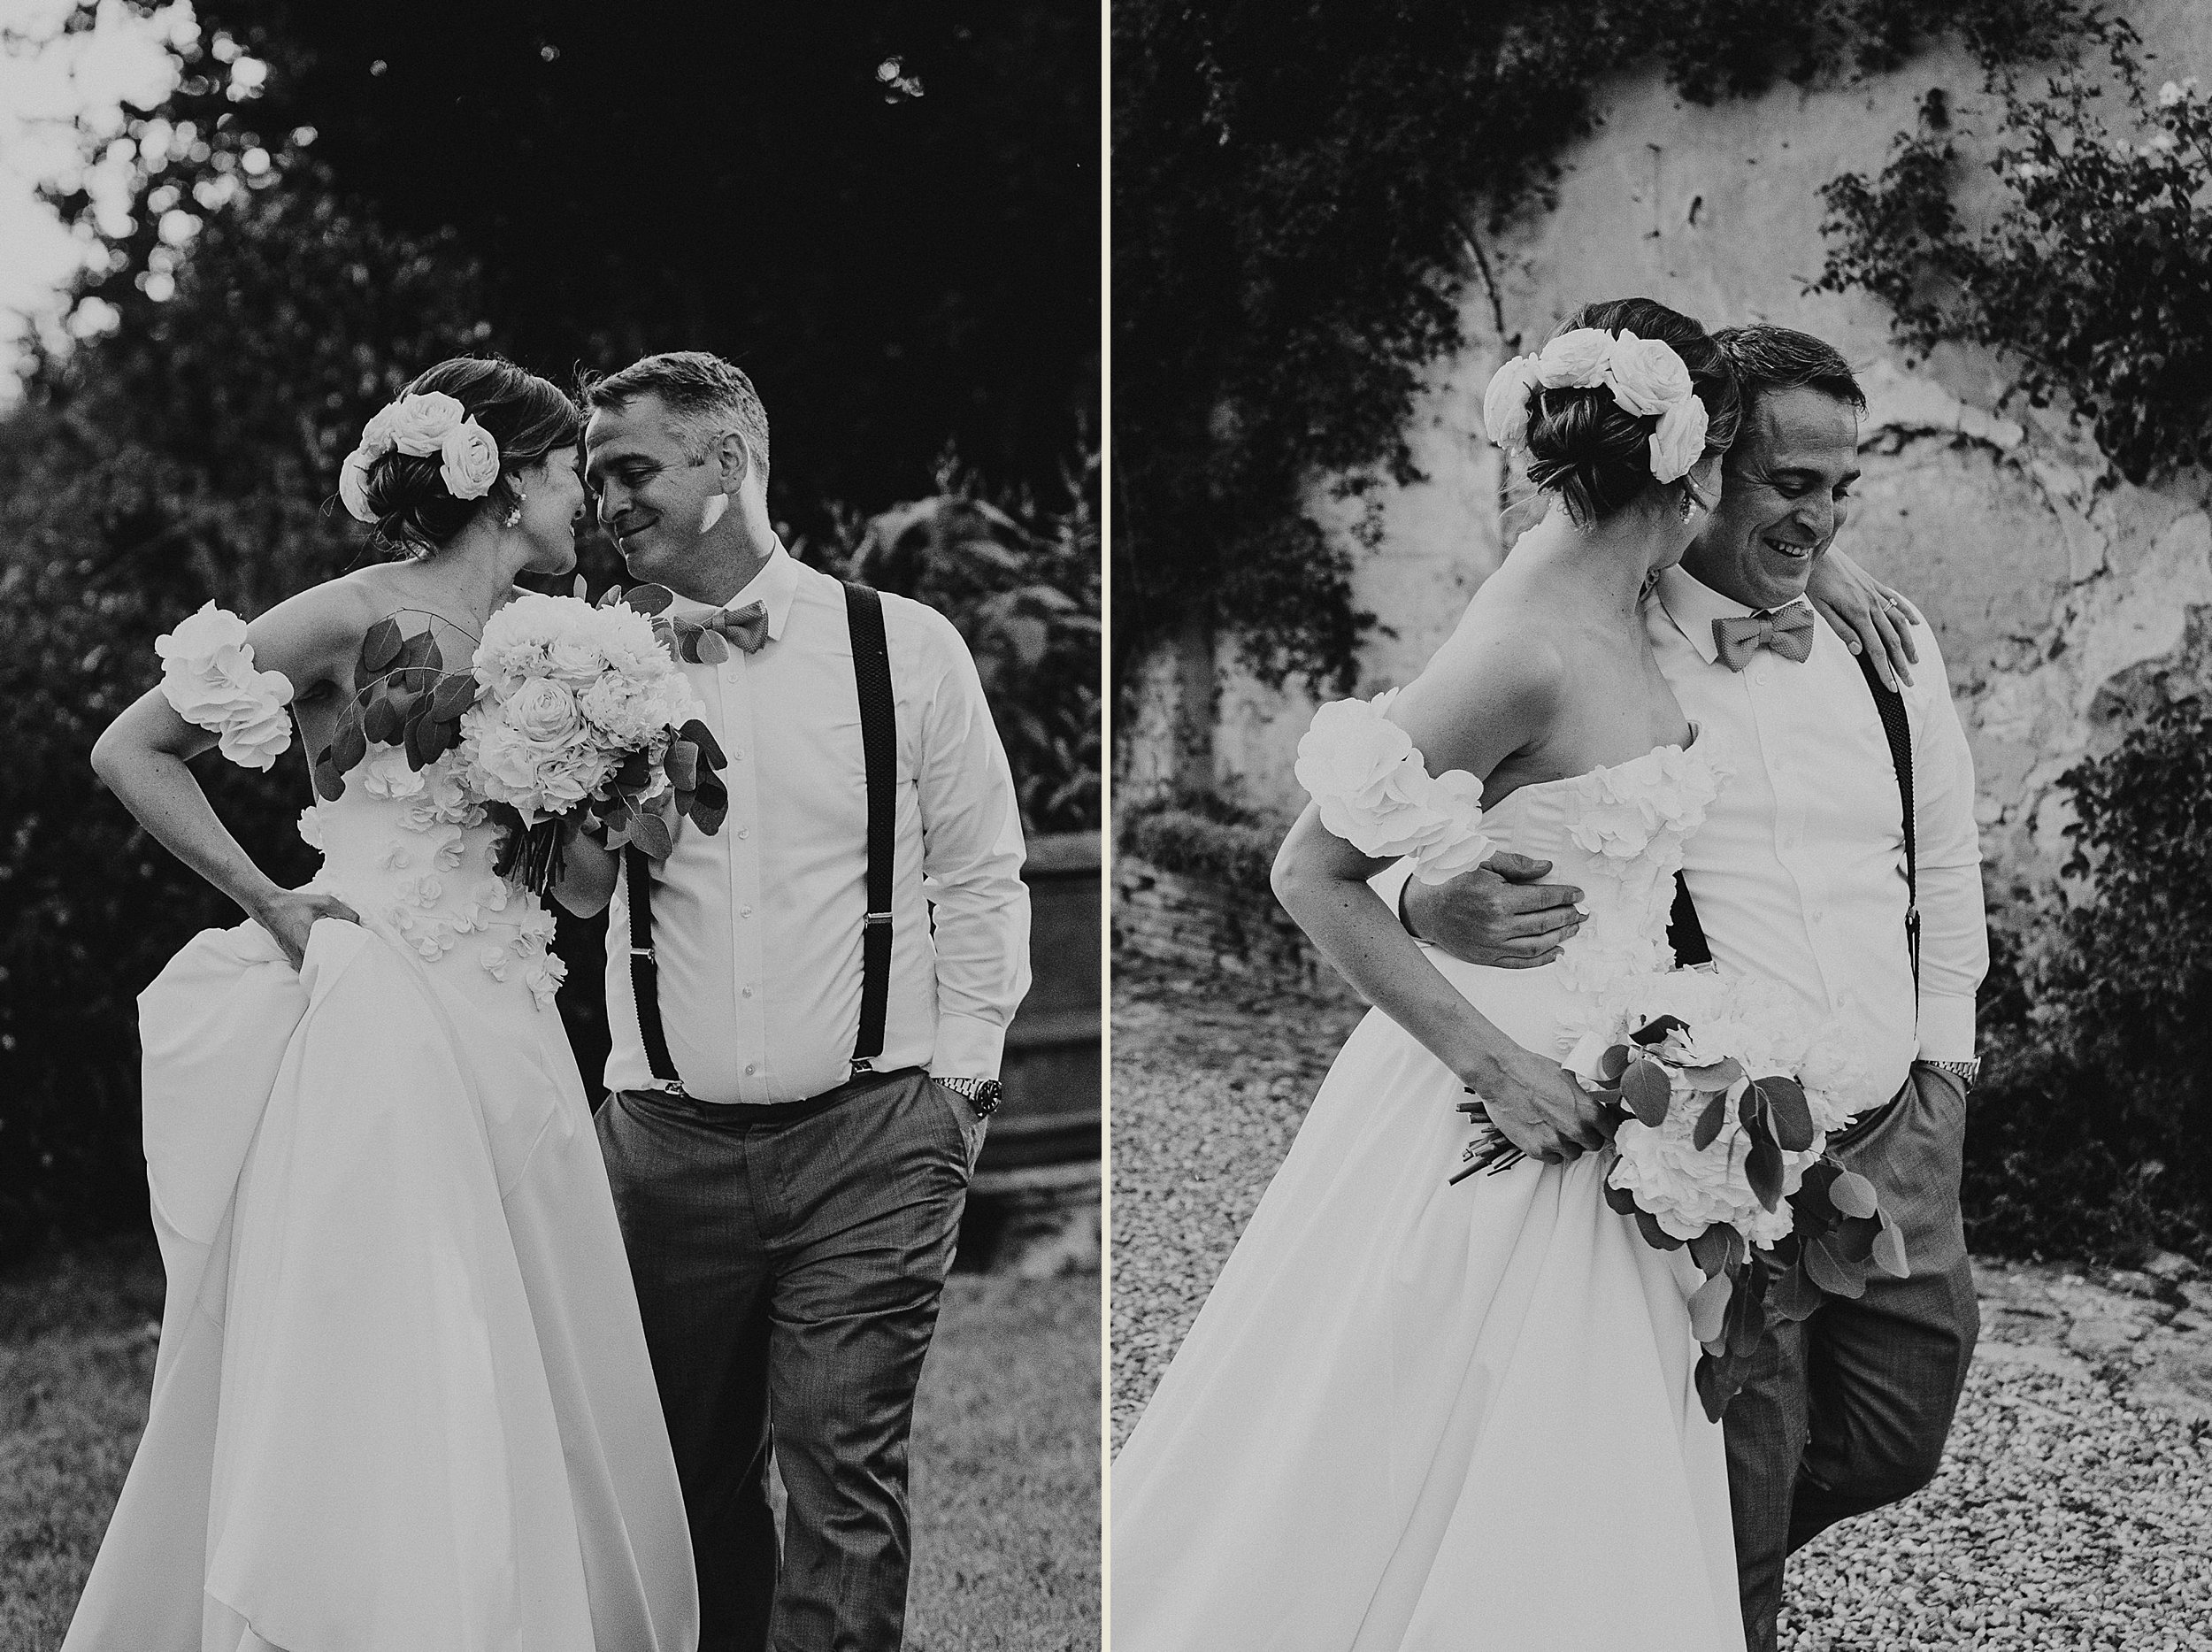 Tuscan Villa Wedding - Portraits of the Bride and Groom